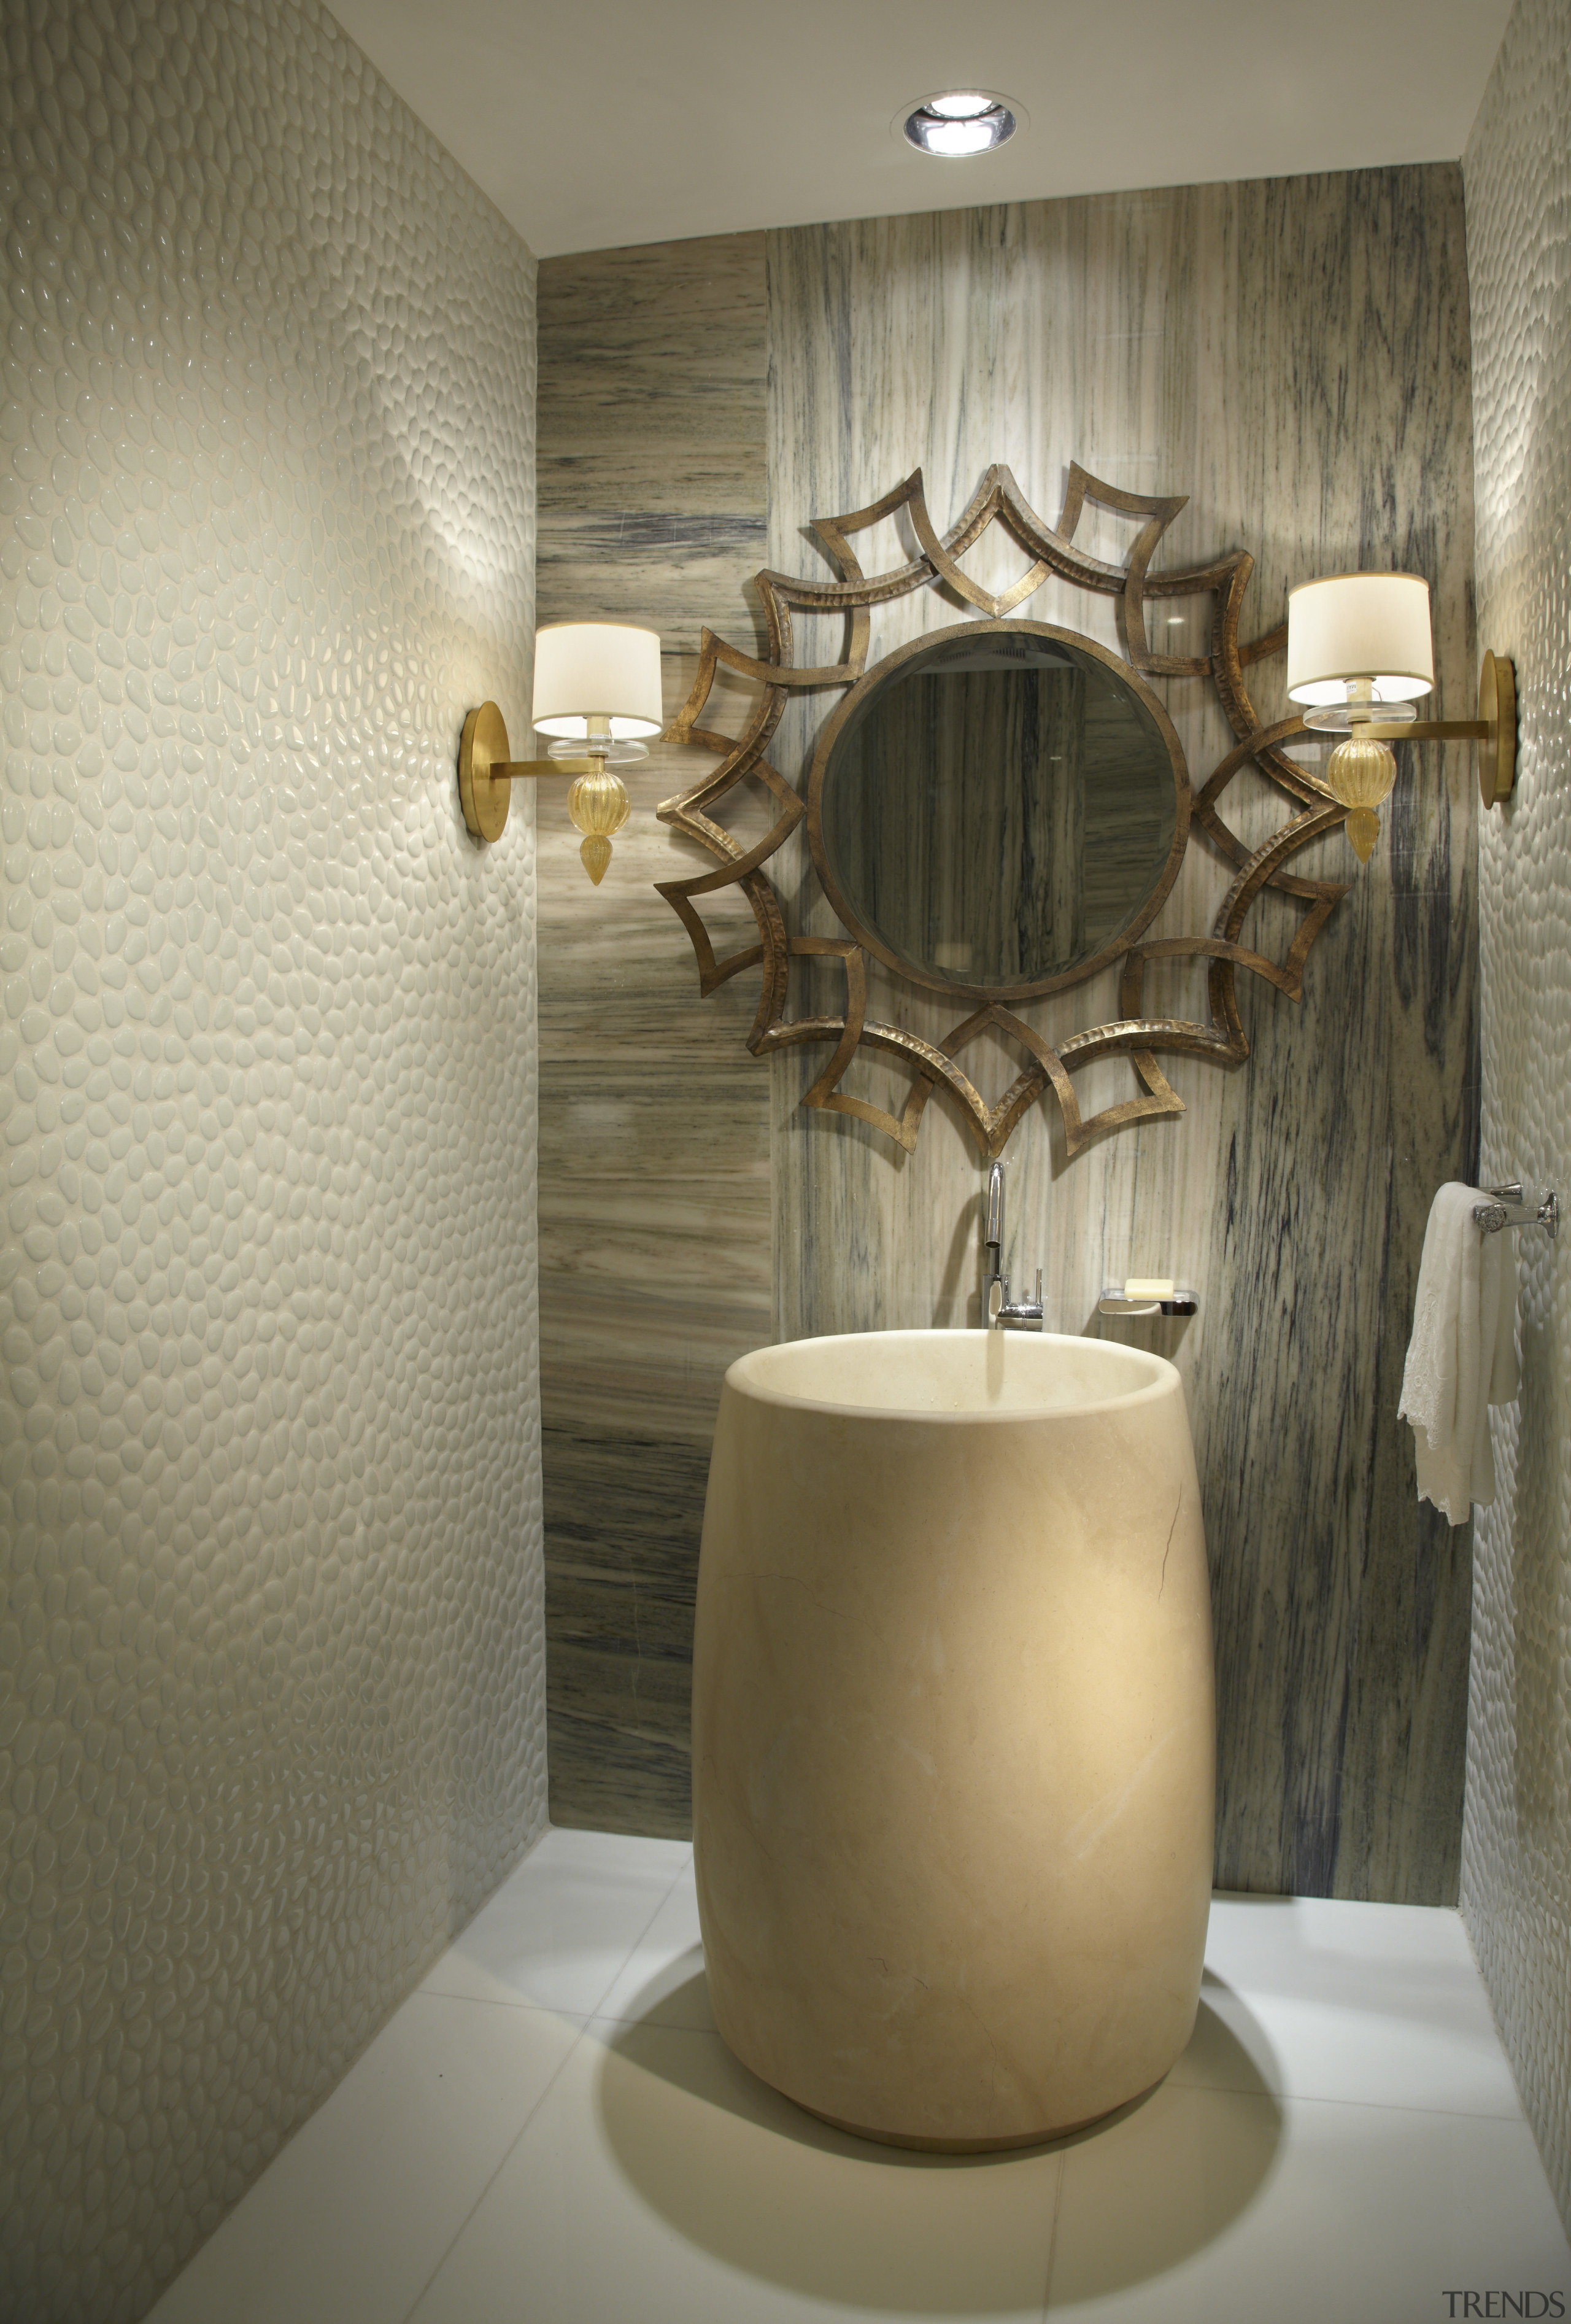 The sculptural basin is the centrepiece of this bathroom, ceiling, ceramic, flooring, interior design, light fixture, product design, room, wall, brown, gray